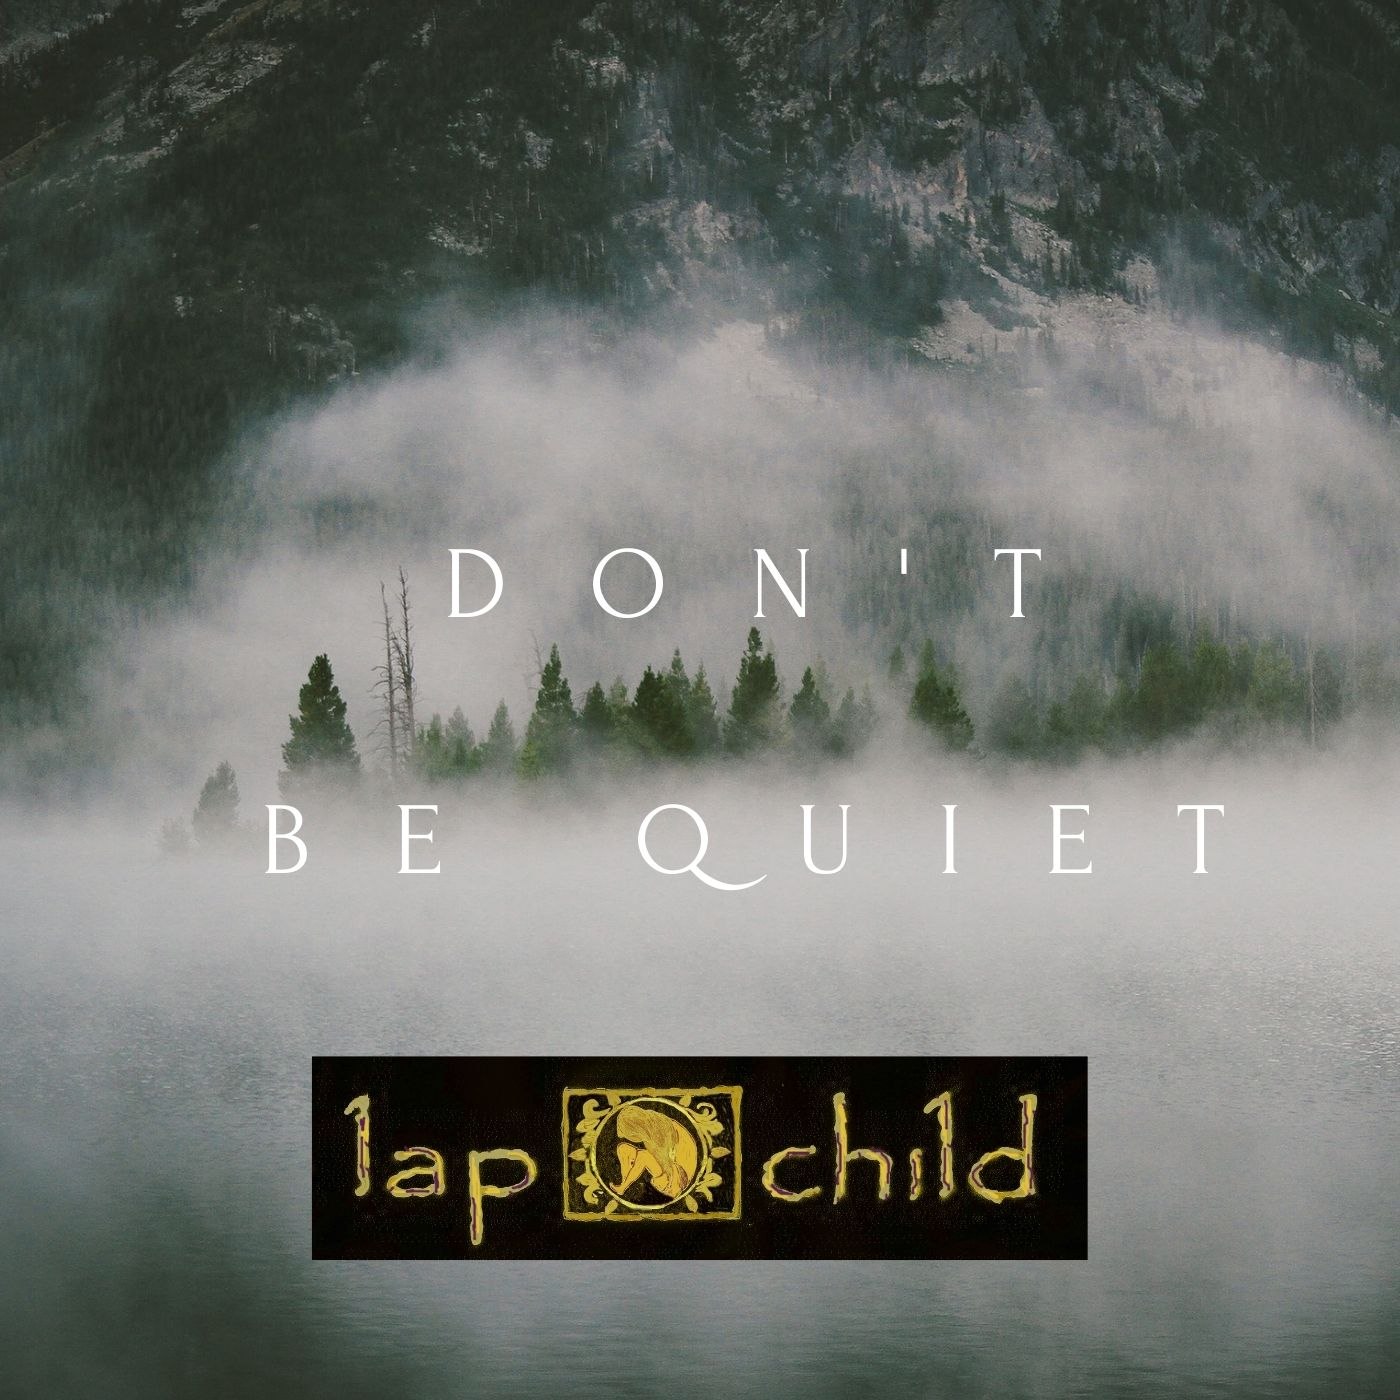 Don't Be Quiet by Lap Child